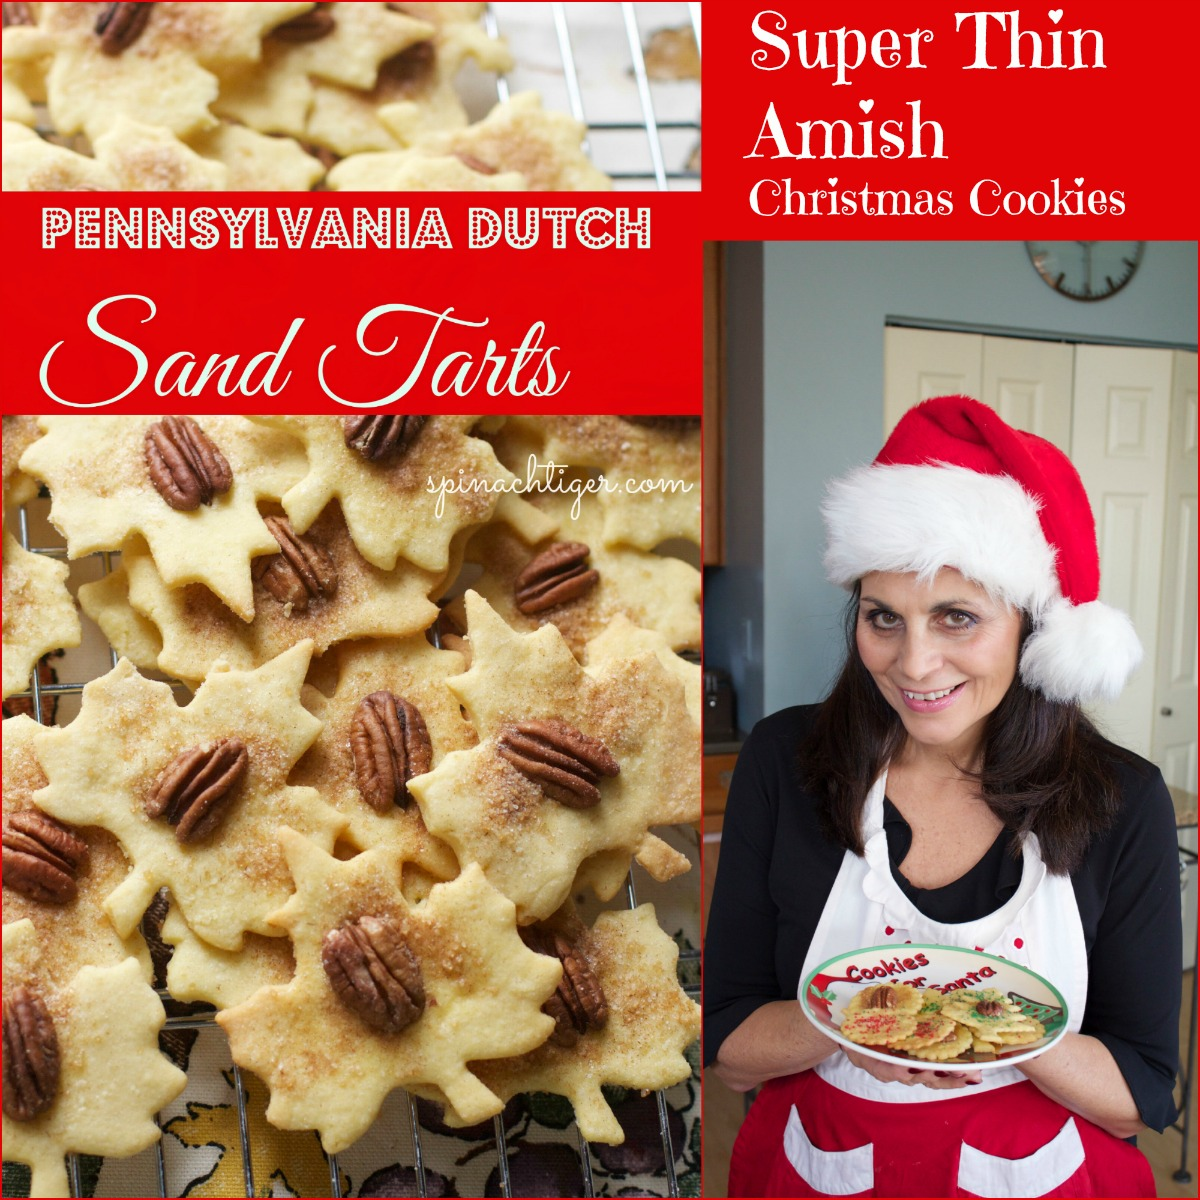 Pennsylvania Dutch Sand Tarts from #spinachtiger #sandtarts #christmascookie #amishcookie via @angelaroberts